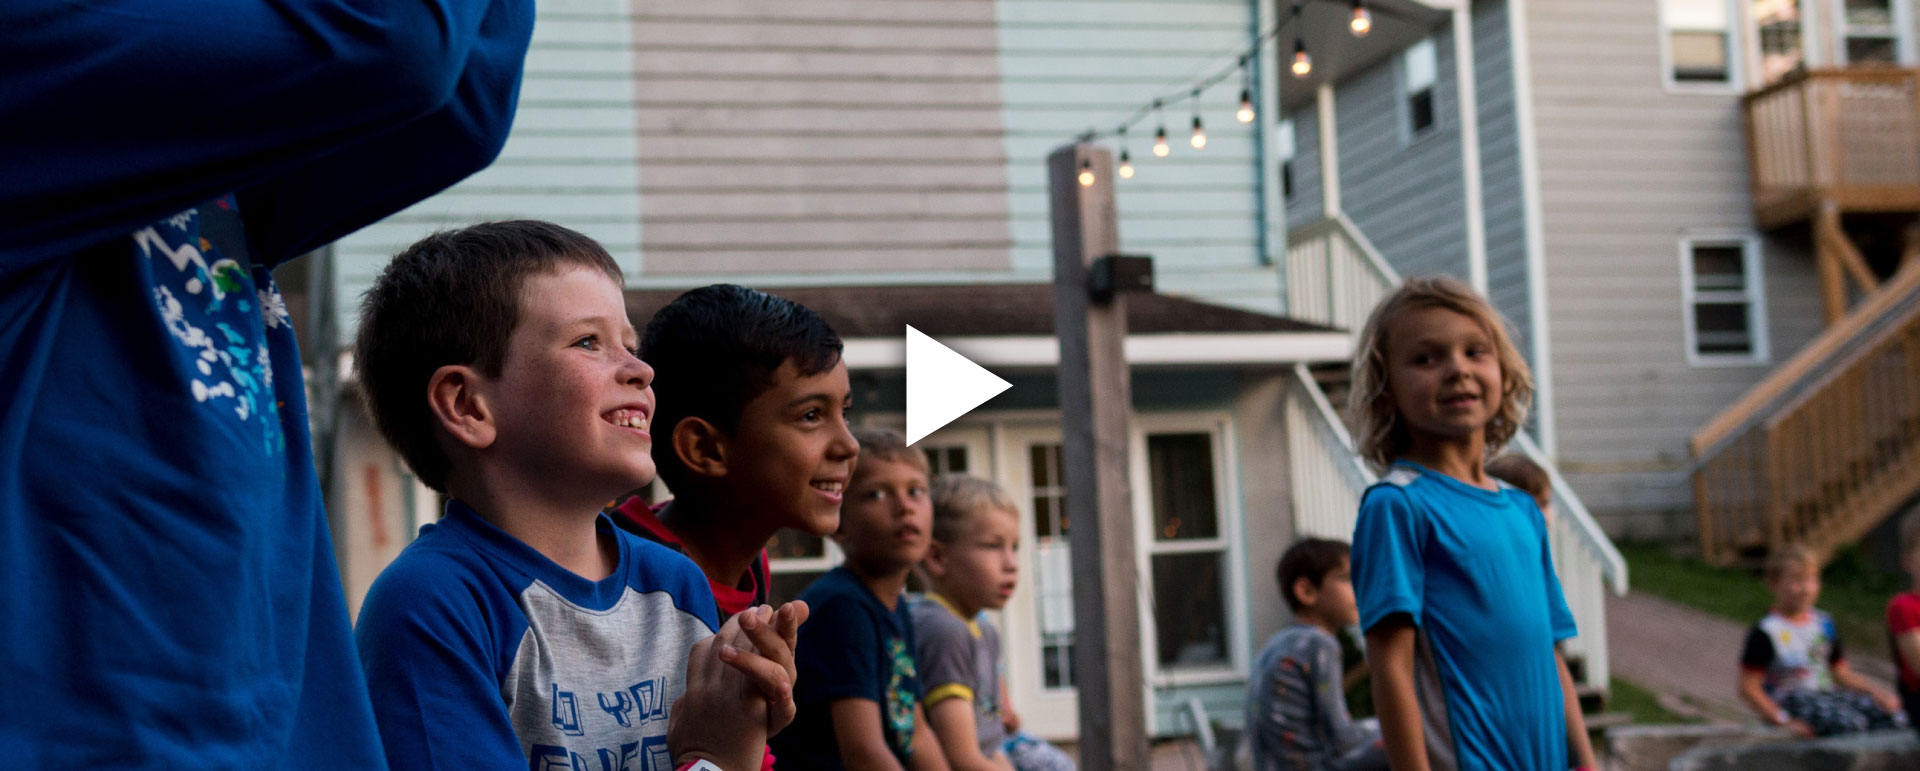 Muskoka Woods | A summer camp so excellent, you'll want to come